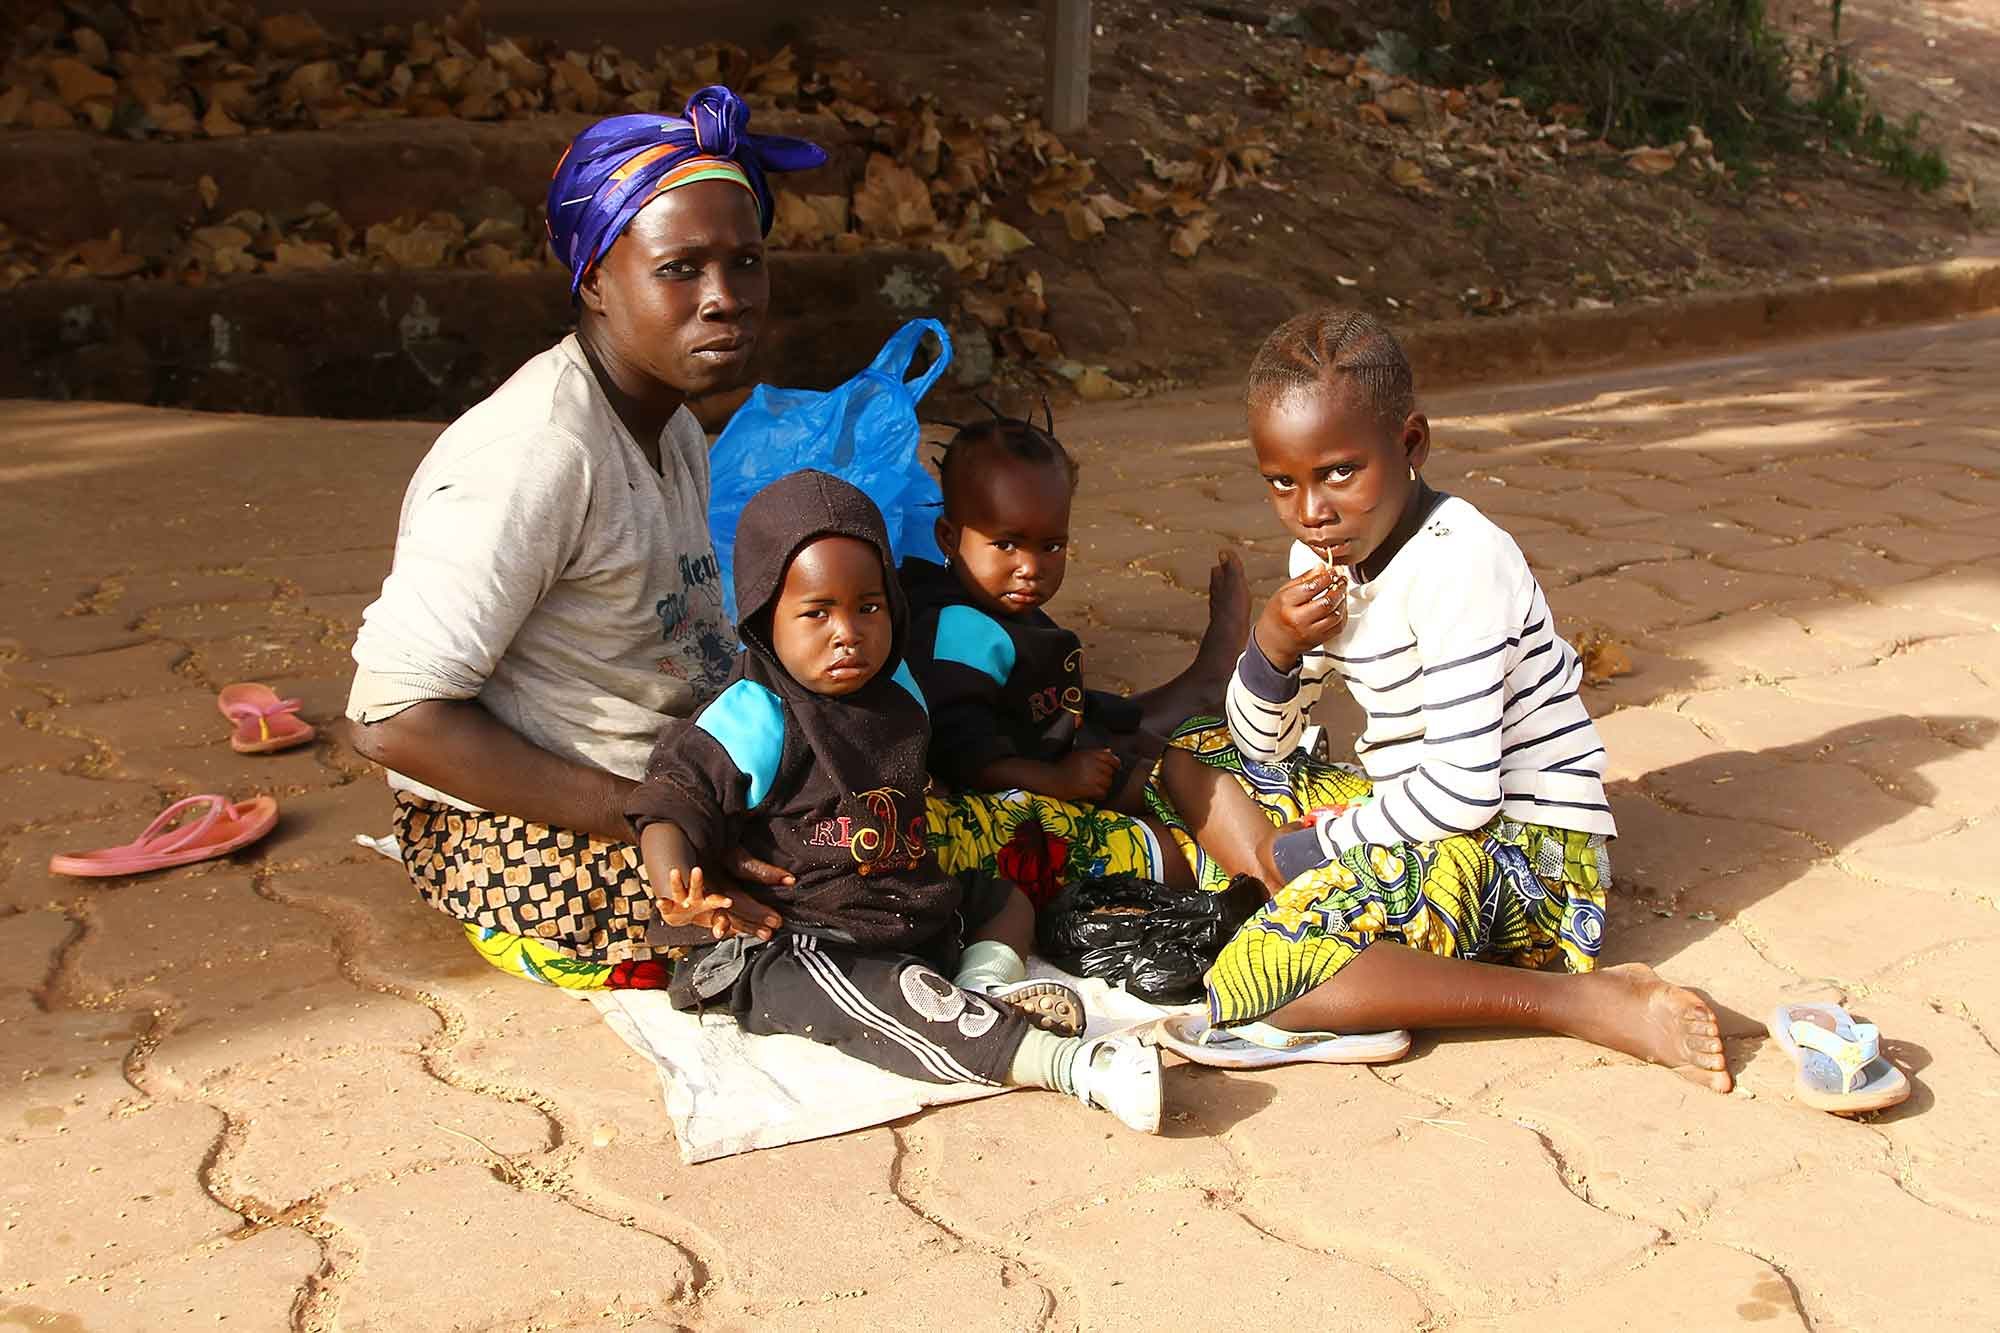 family-sitting-in-streets-of-bobodioulasso-burkina-faso